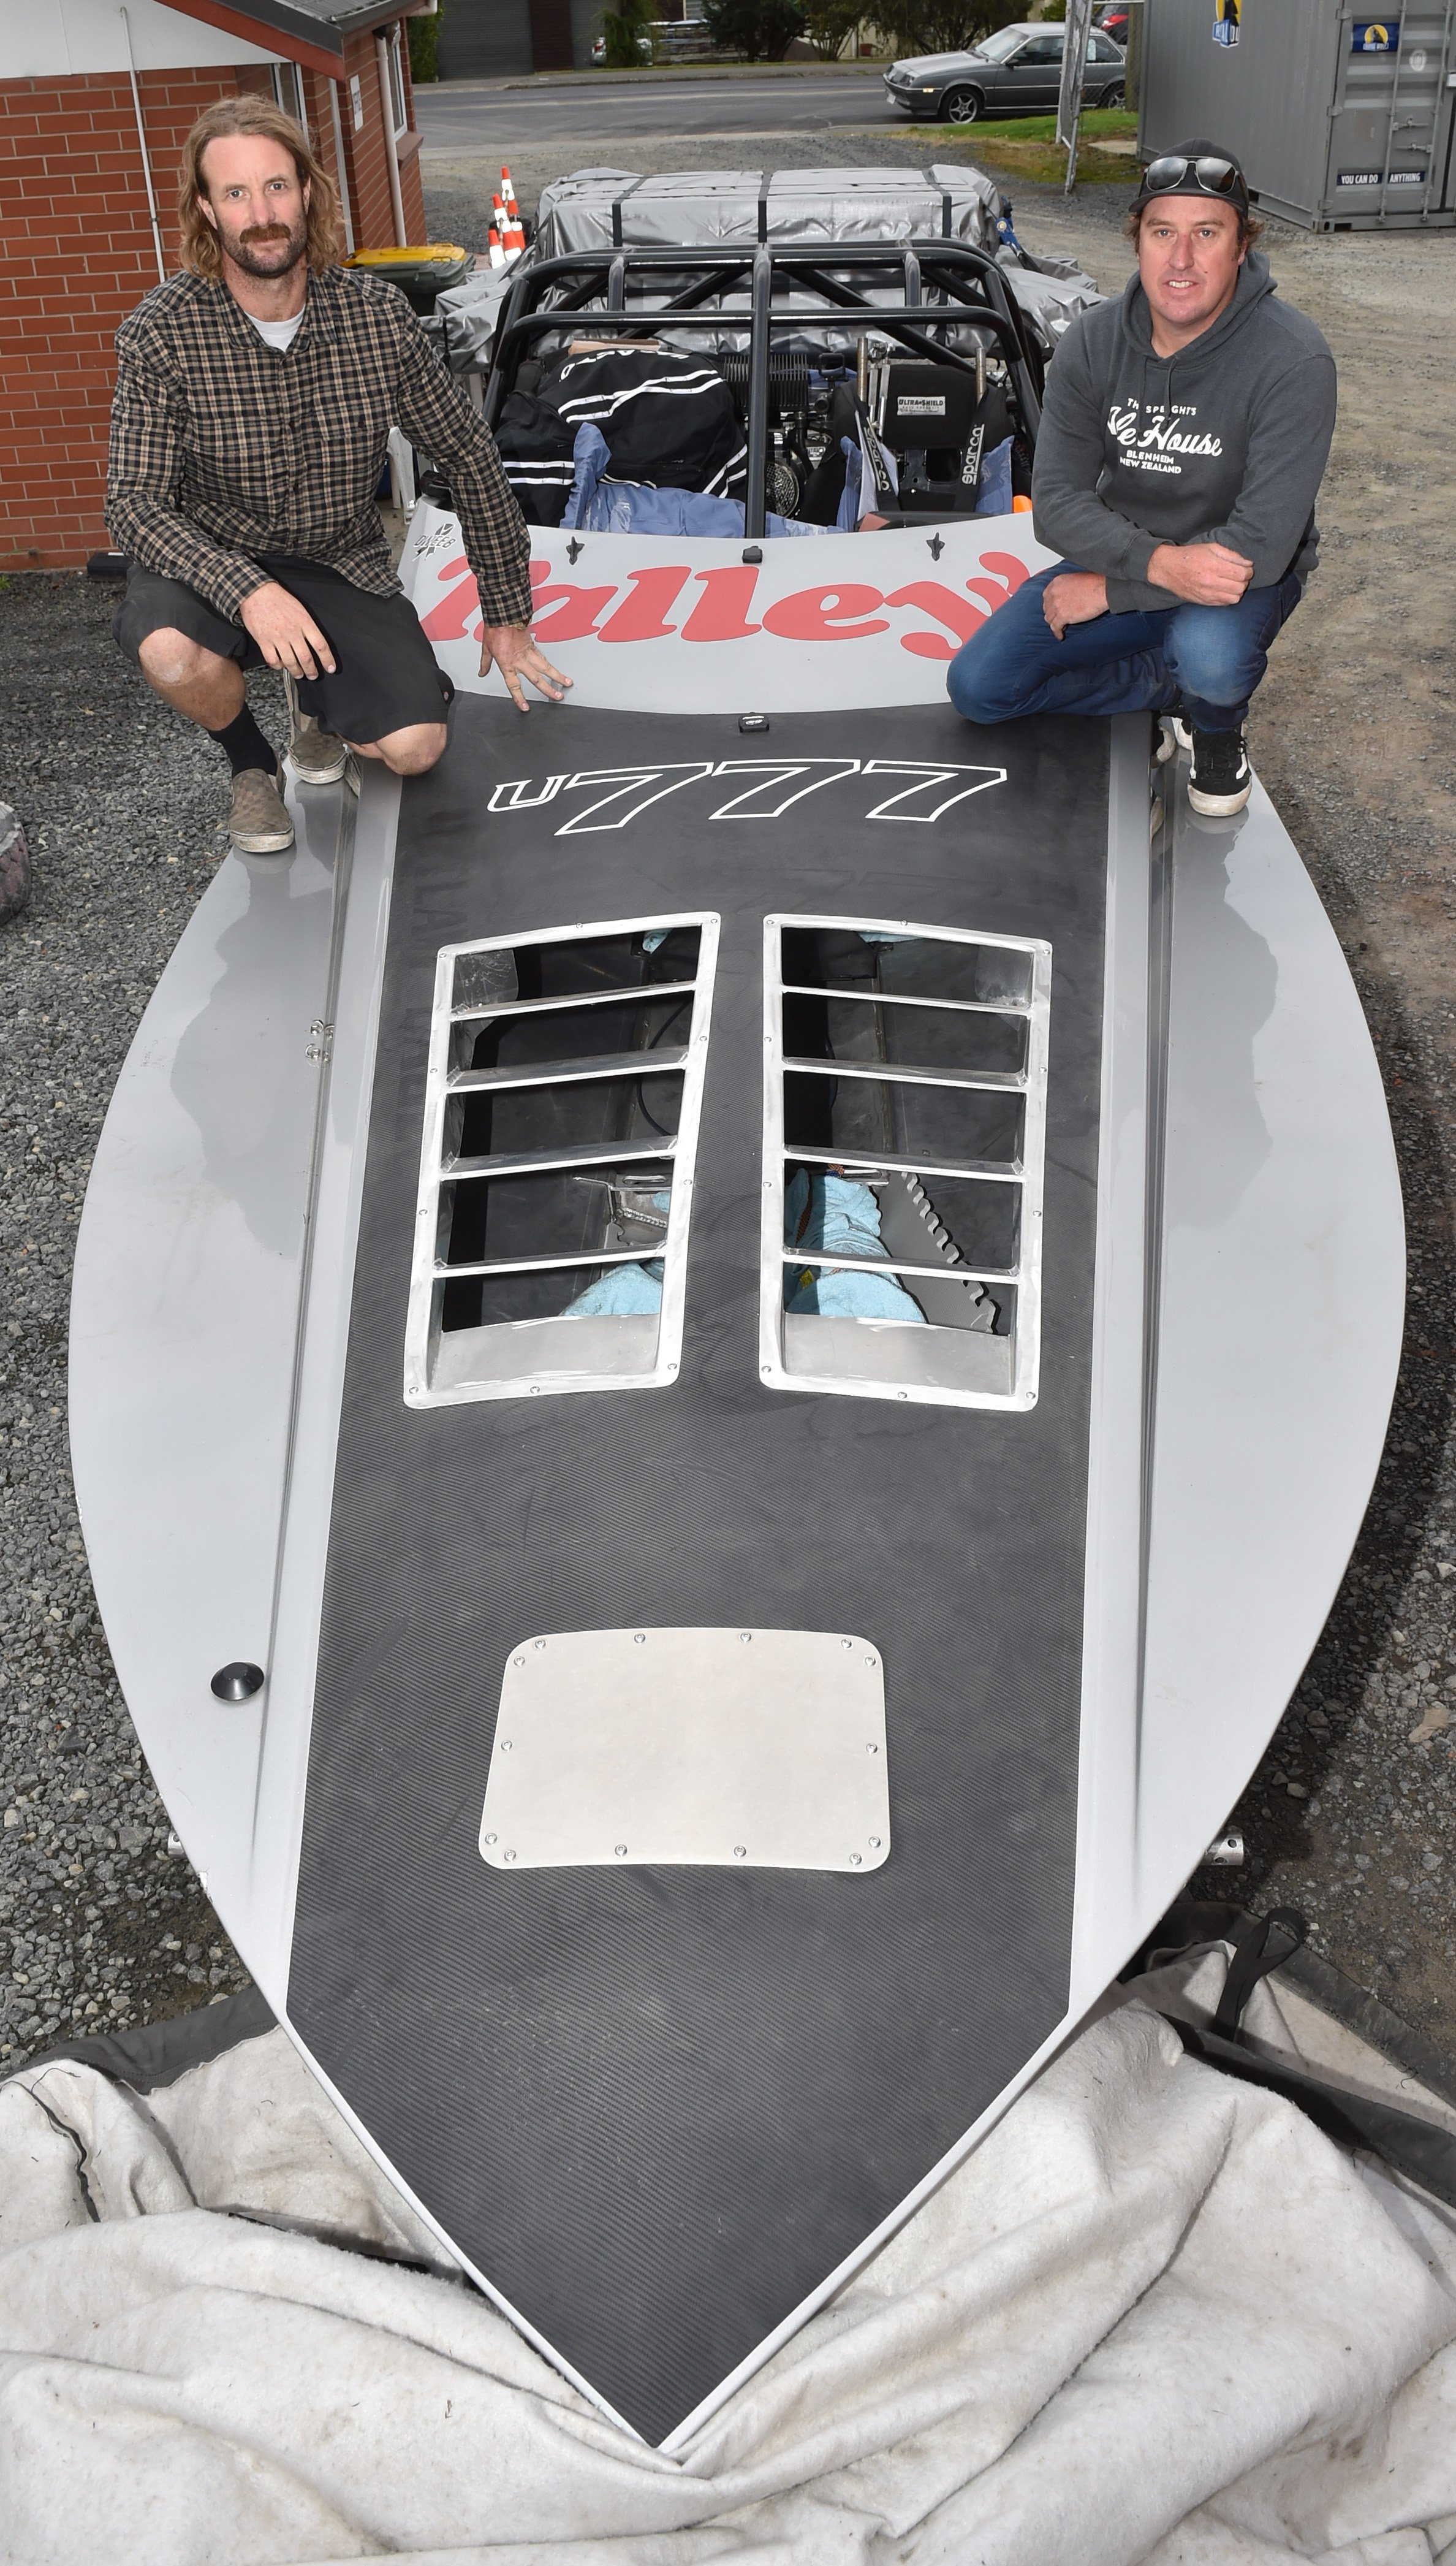 Driver Regan Williamson (right) and navigator Blair Christmas with their Talley's U777 jet-boat...